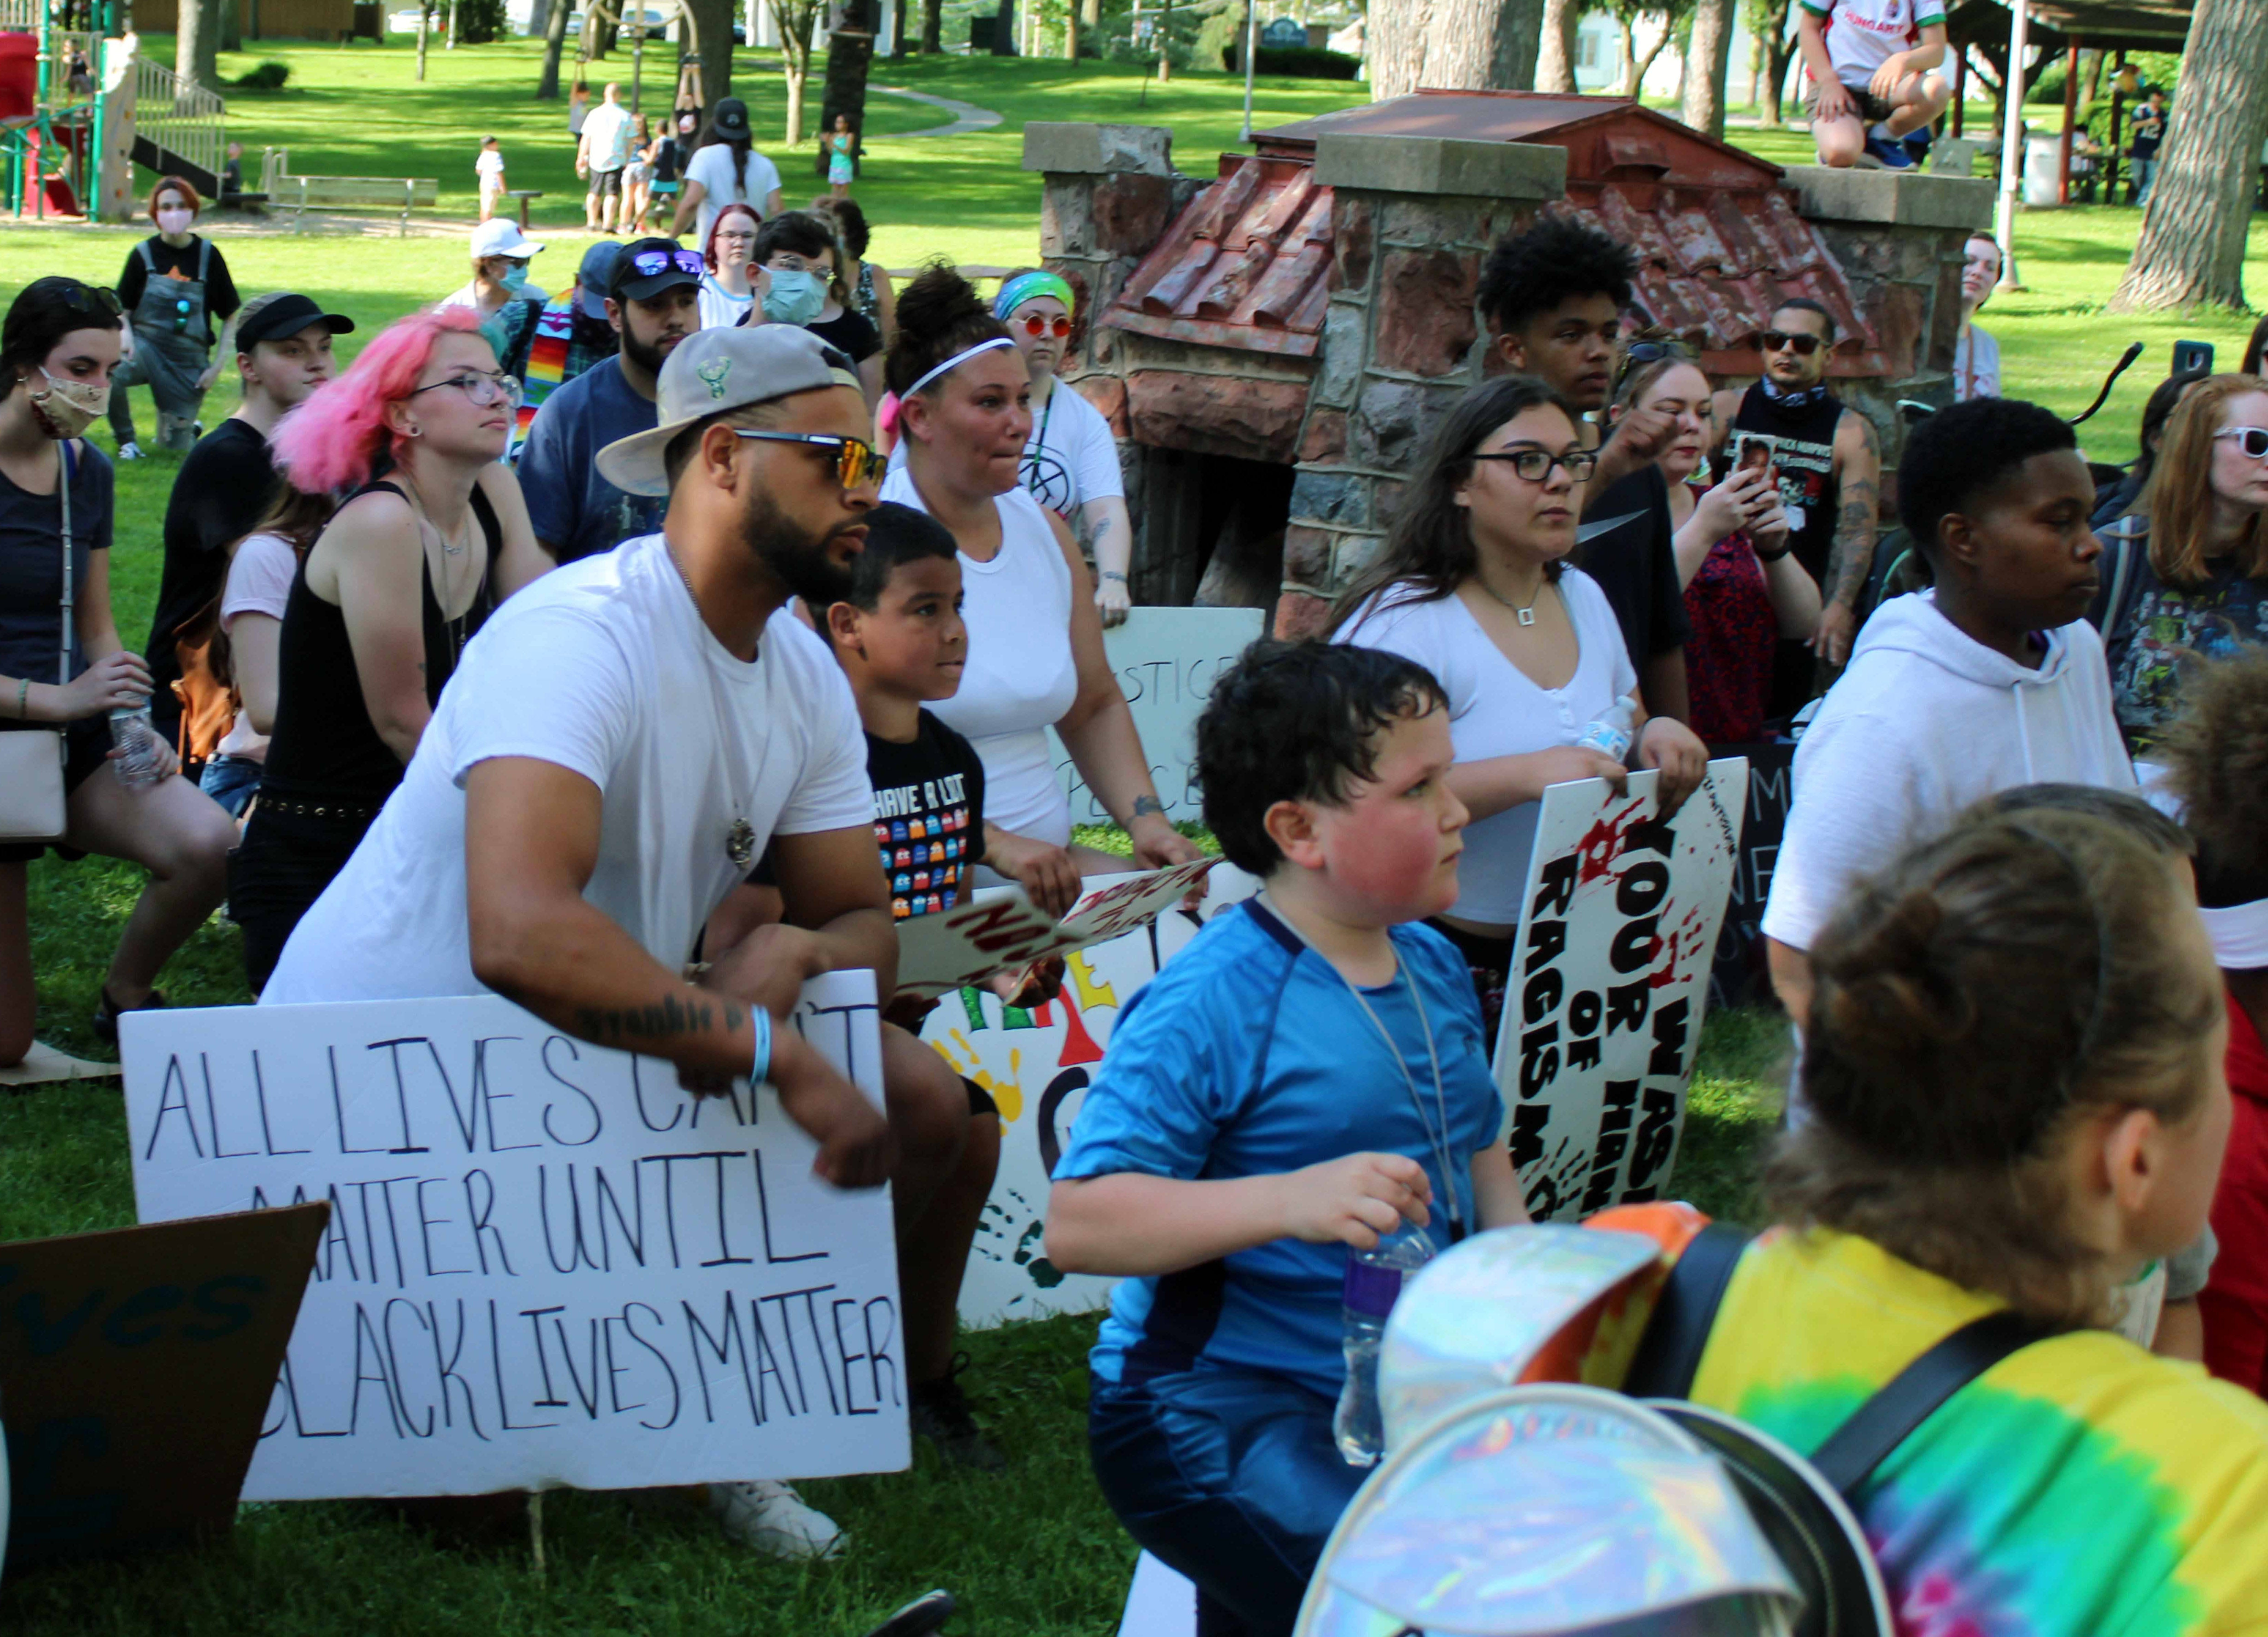 This Black Lives Matter march ended at the Swan City Park springhouse in Beaver Dam, where speeches were made about the movement. Organizers plan on continuing the protests in support of greater understanding about the issues facing the Black community.